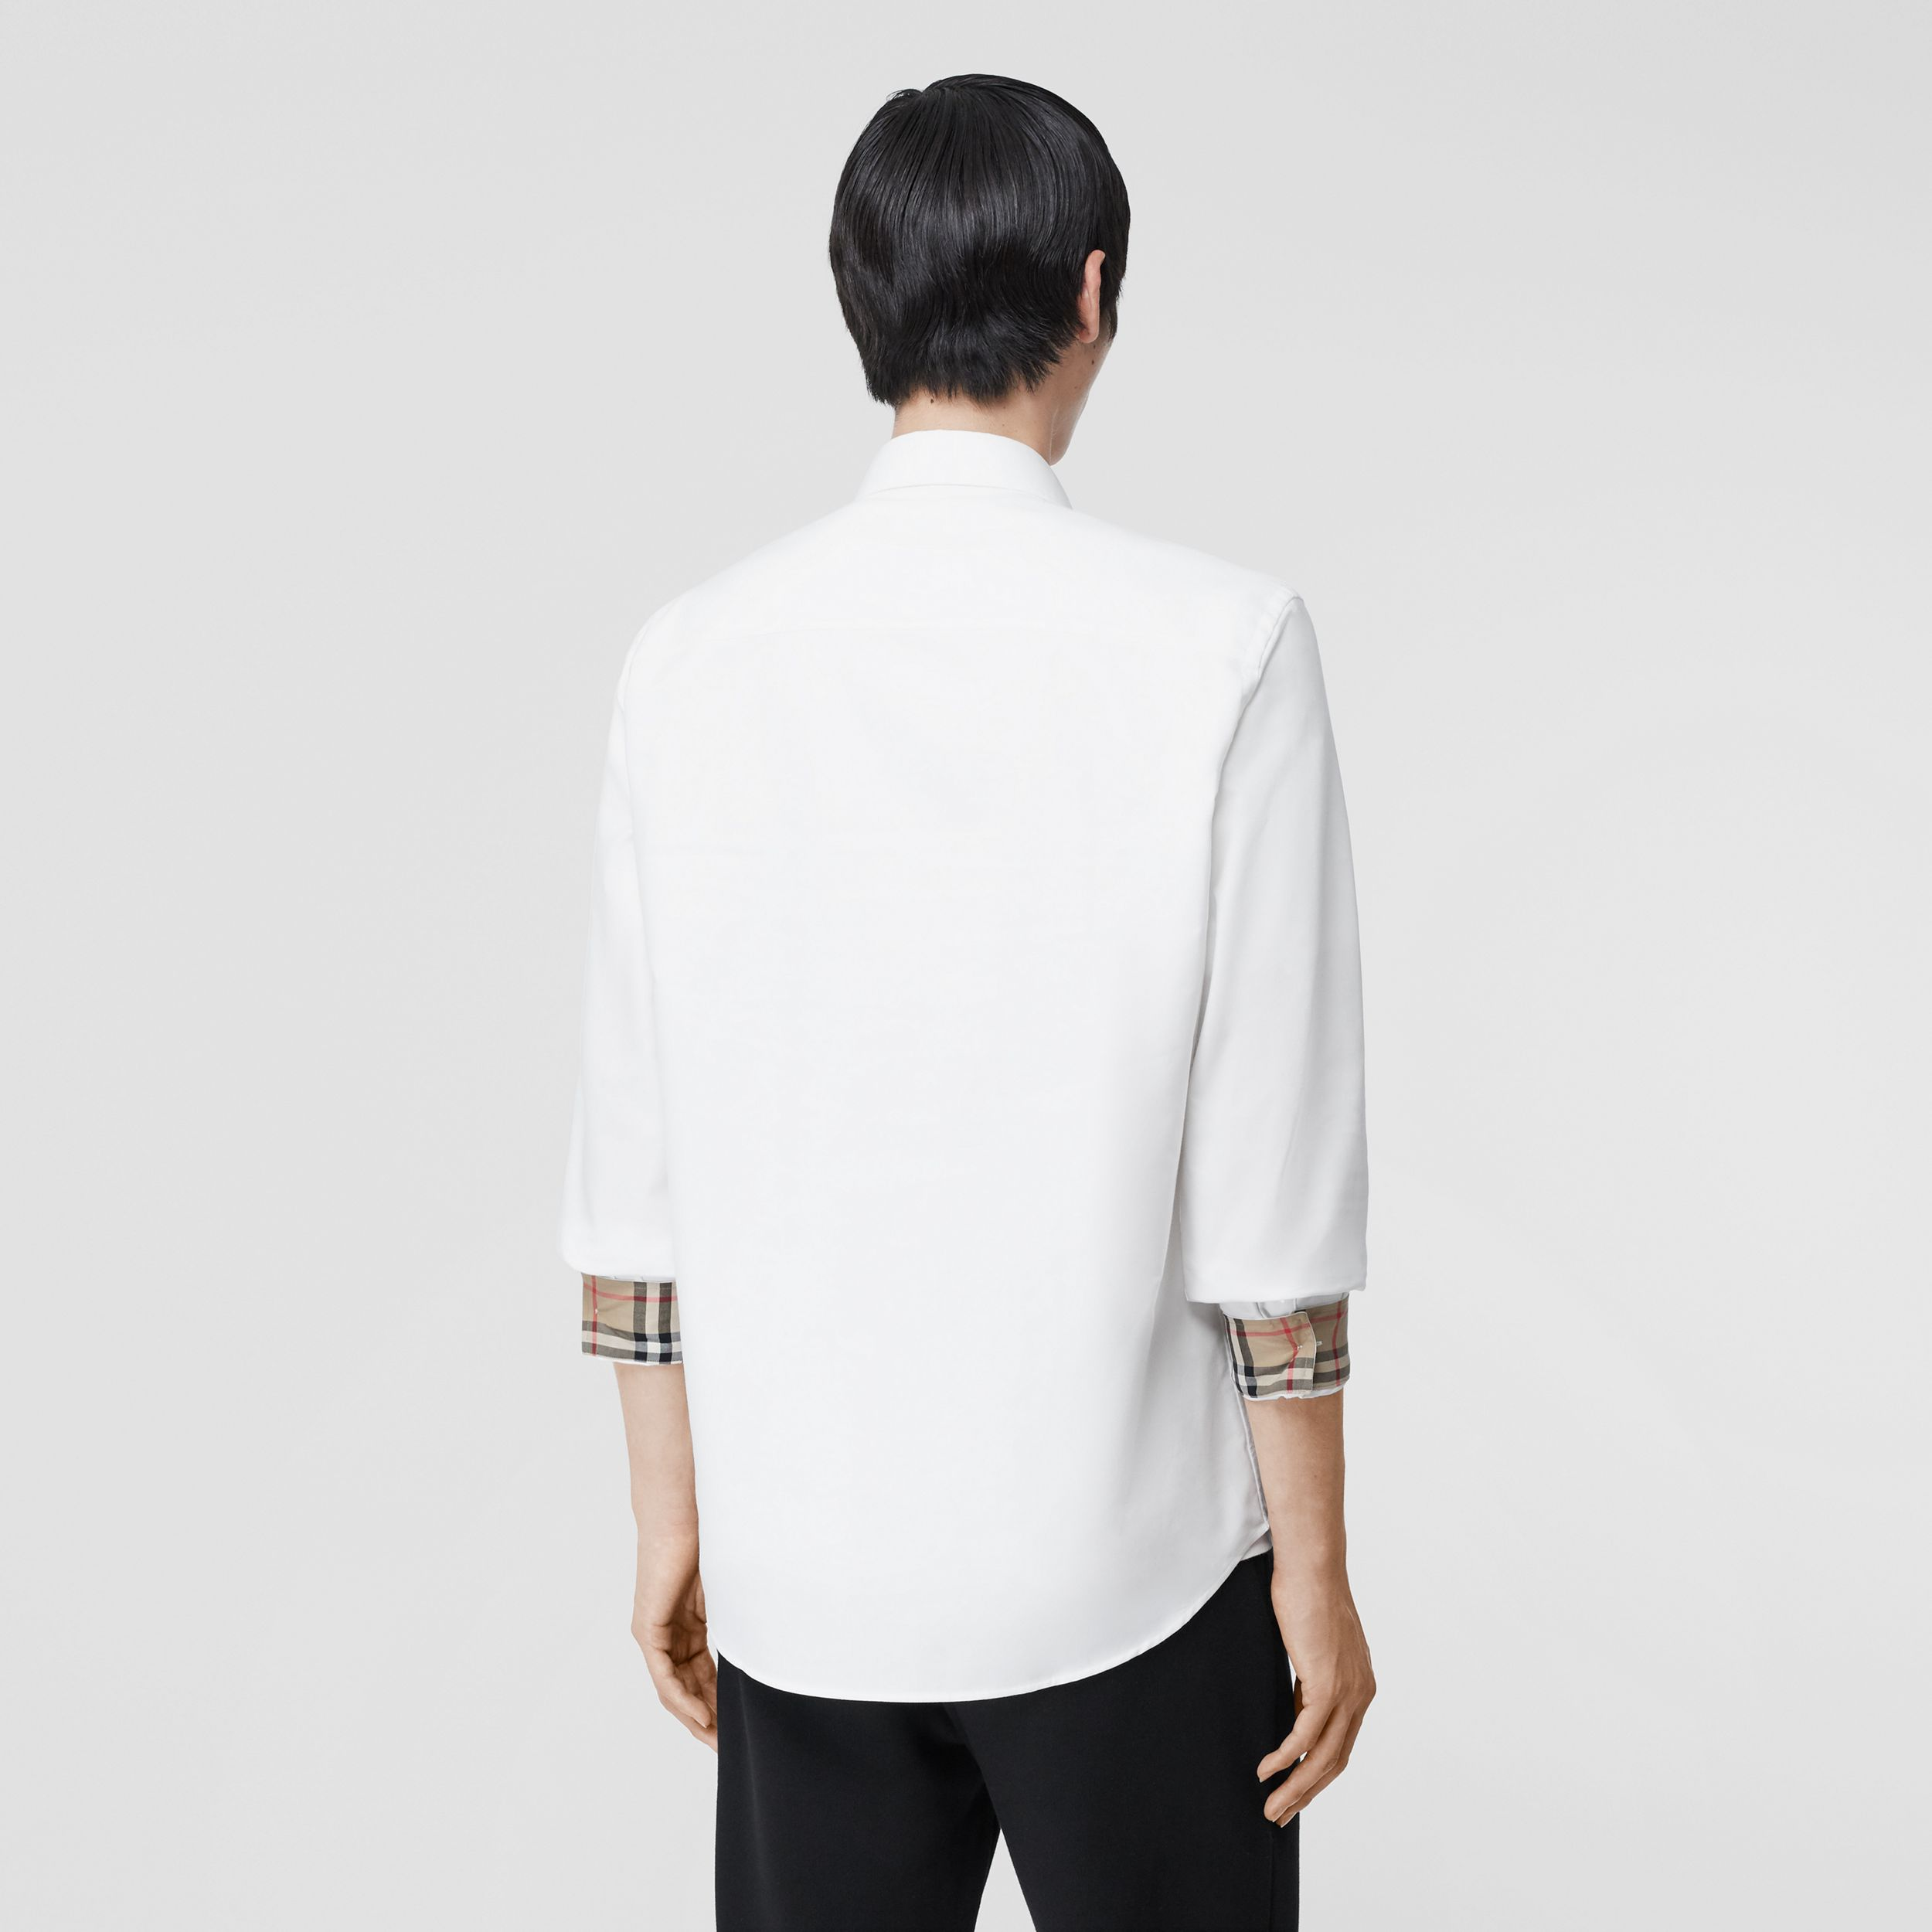 Monogram Motif Cotton Oxford Shirt in White - Men | Burberry Hong Kong S.A.R. - 3